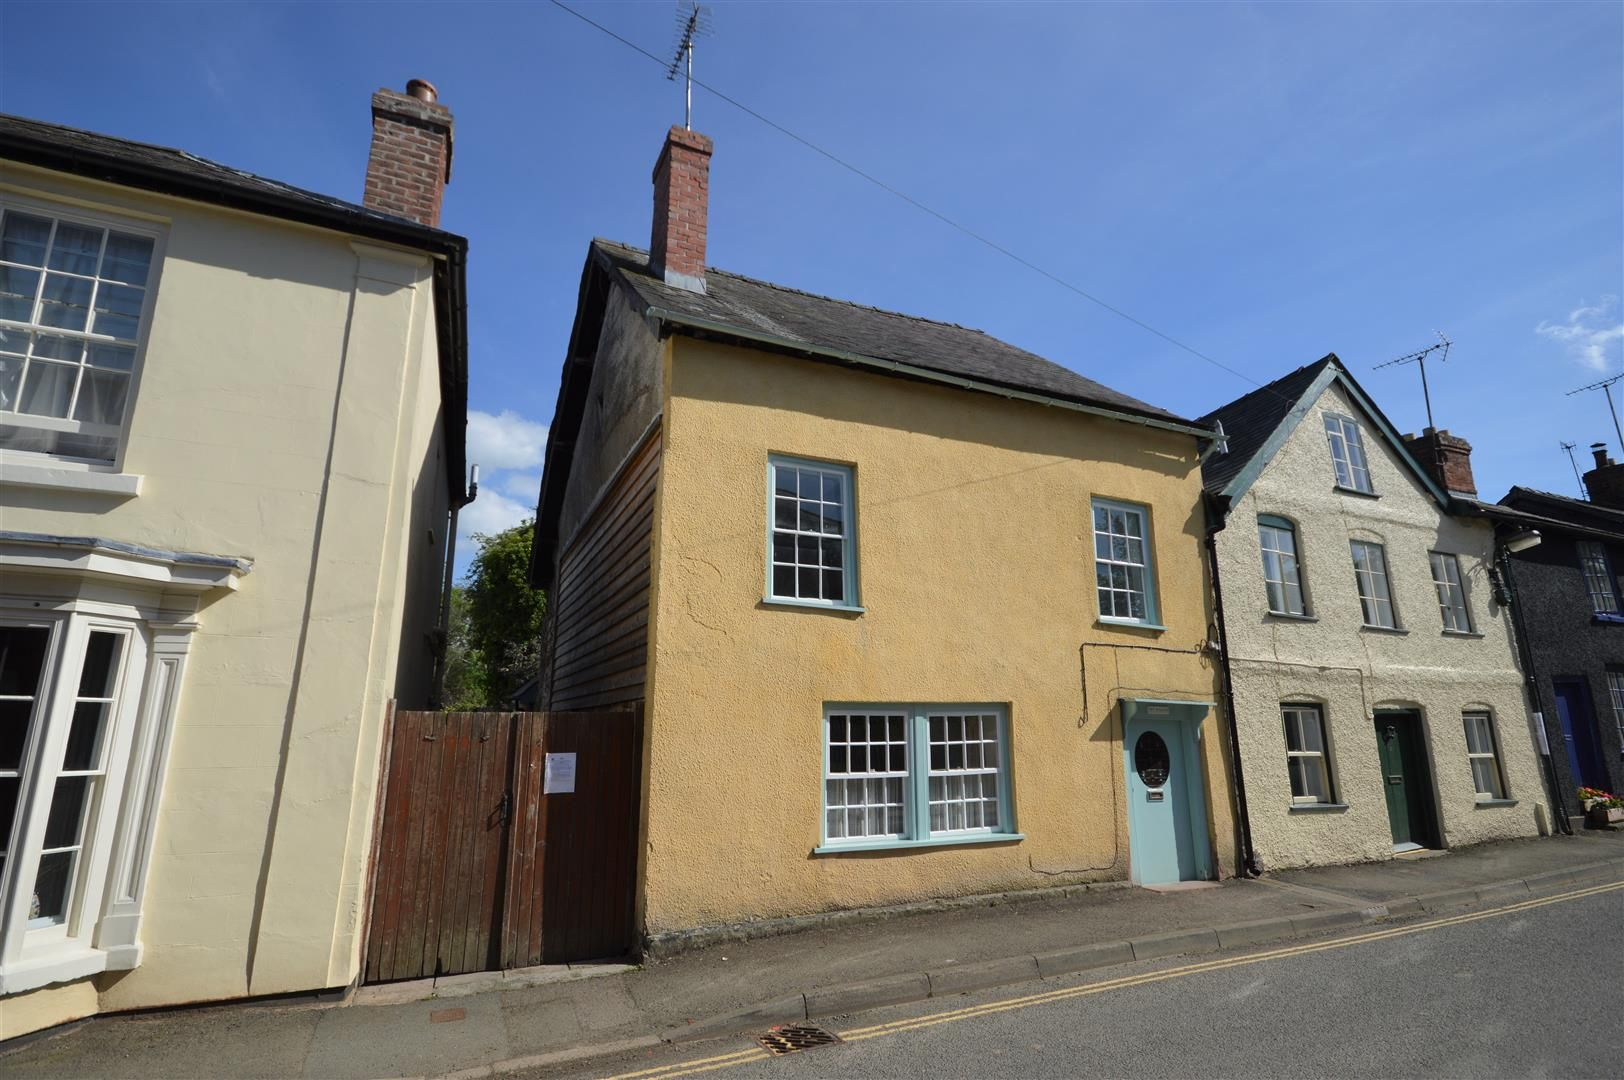 2 bed end of terrace for sale in Presteigne, LD8